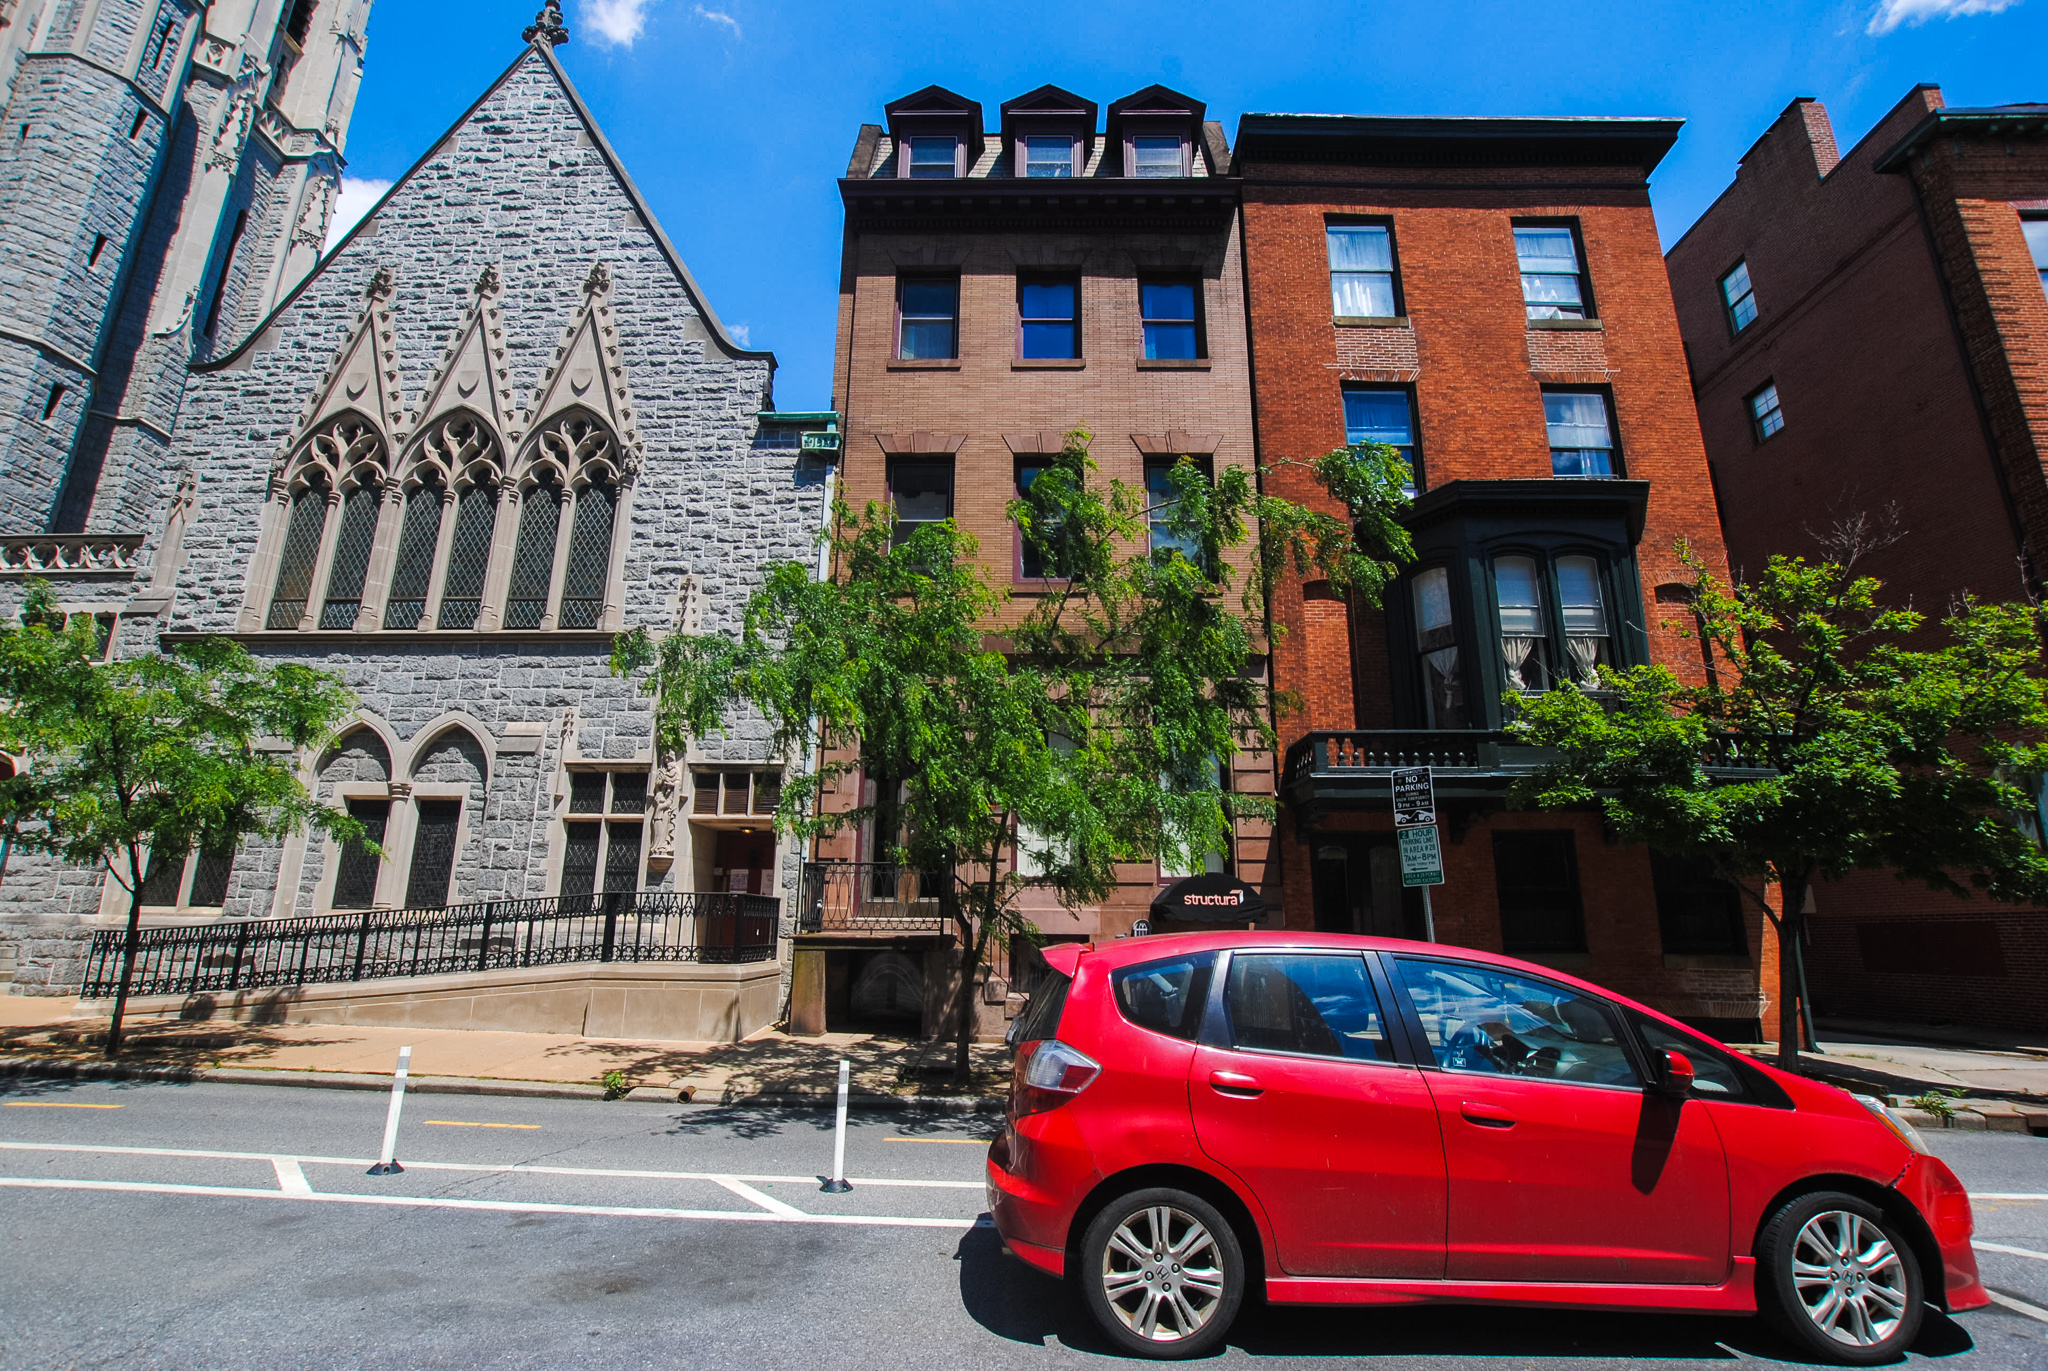 809 Cathedral St. : 6 Apartments/ 2 Office Spaces in the Heart of Historic Mt. Vernon